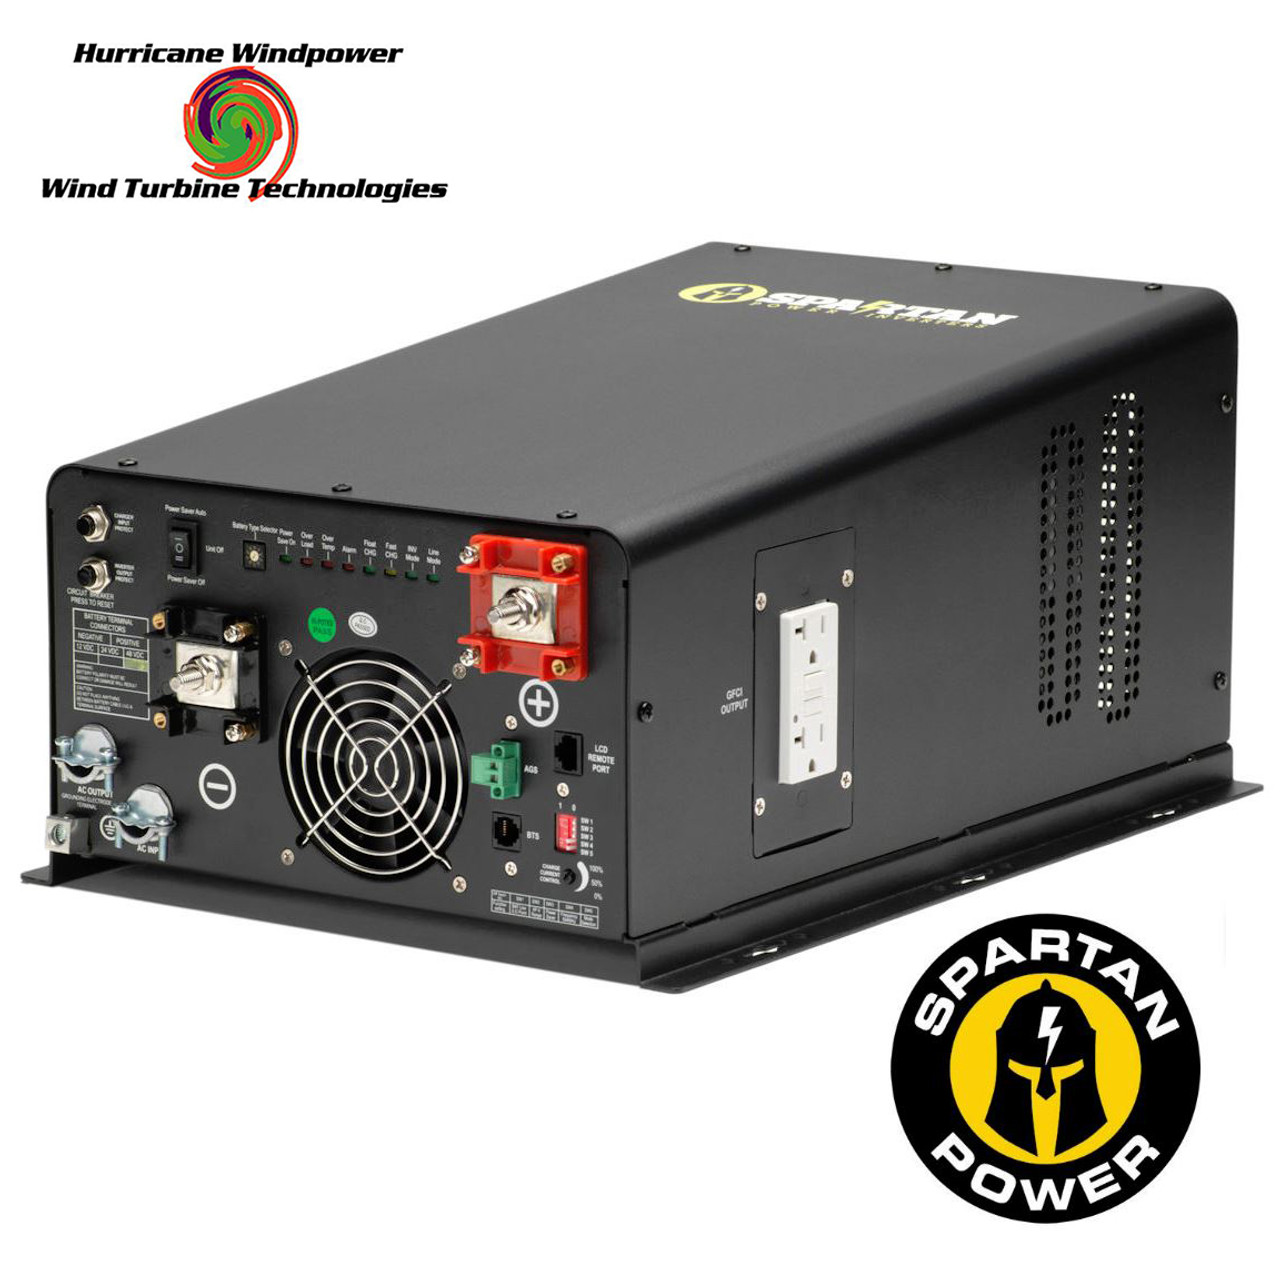 Spartan Power 4400 Watt 24V 120/240VAC Pure Sine Wave Inverter/Charger